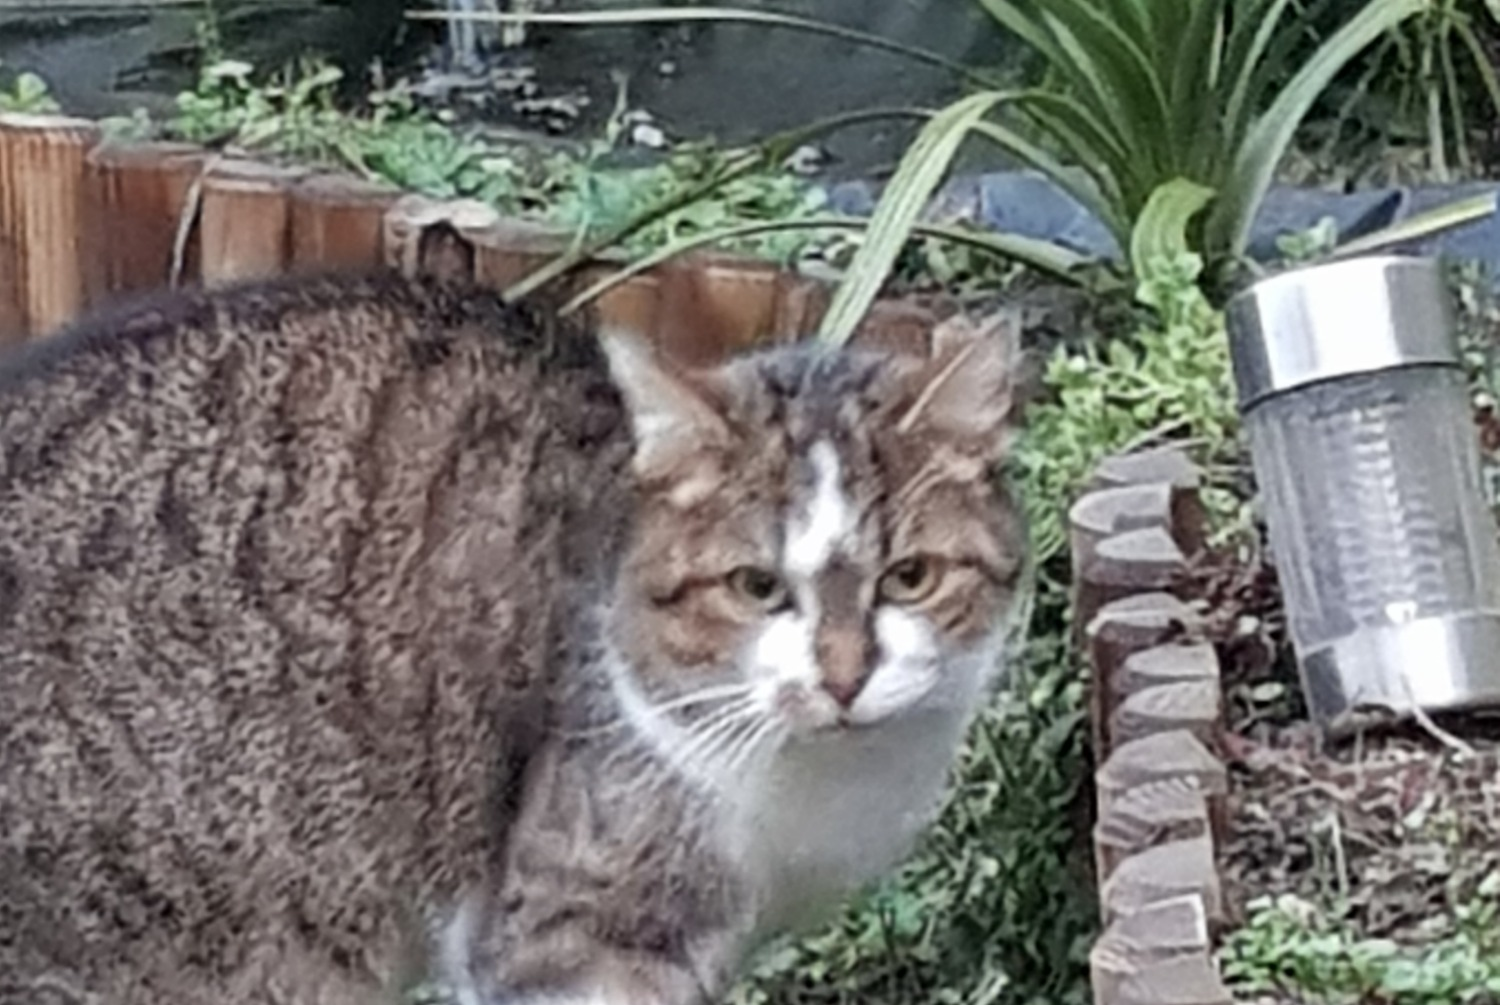 Discovery alert Cat Female , 2 years Fontenay-le-Vicomte France